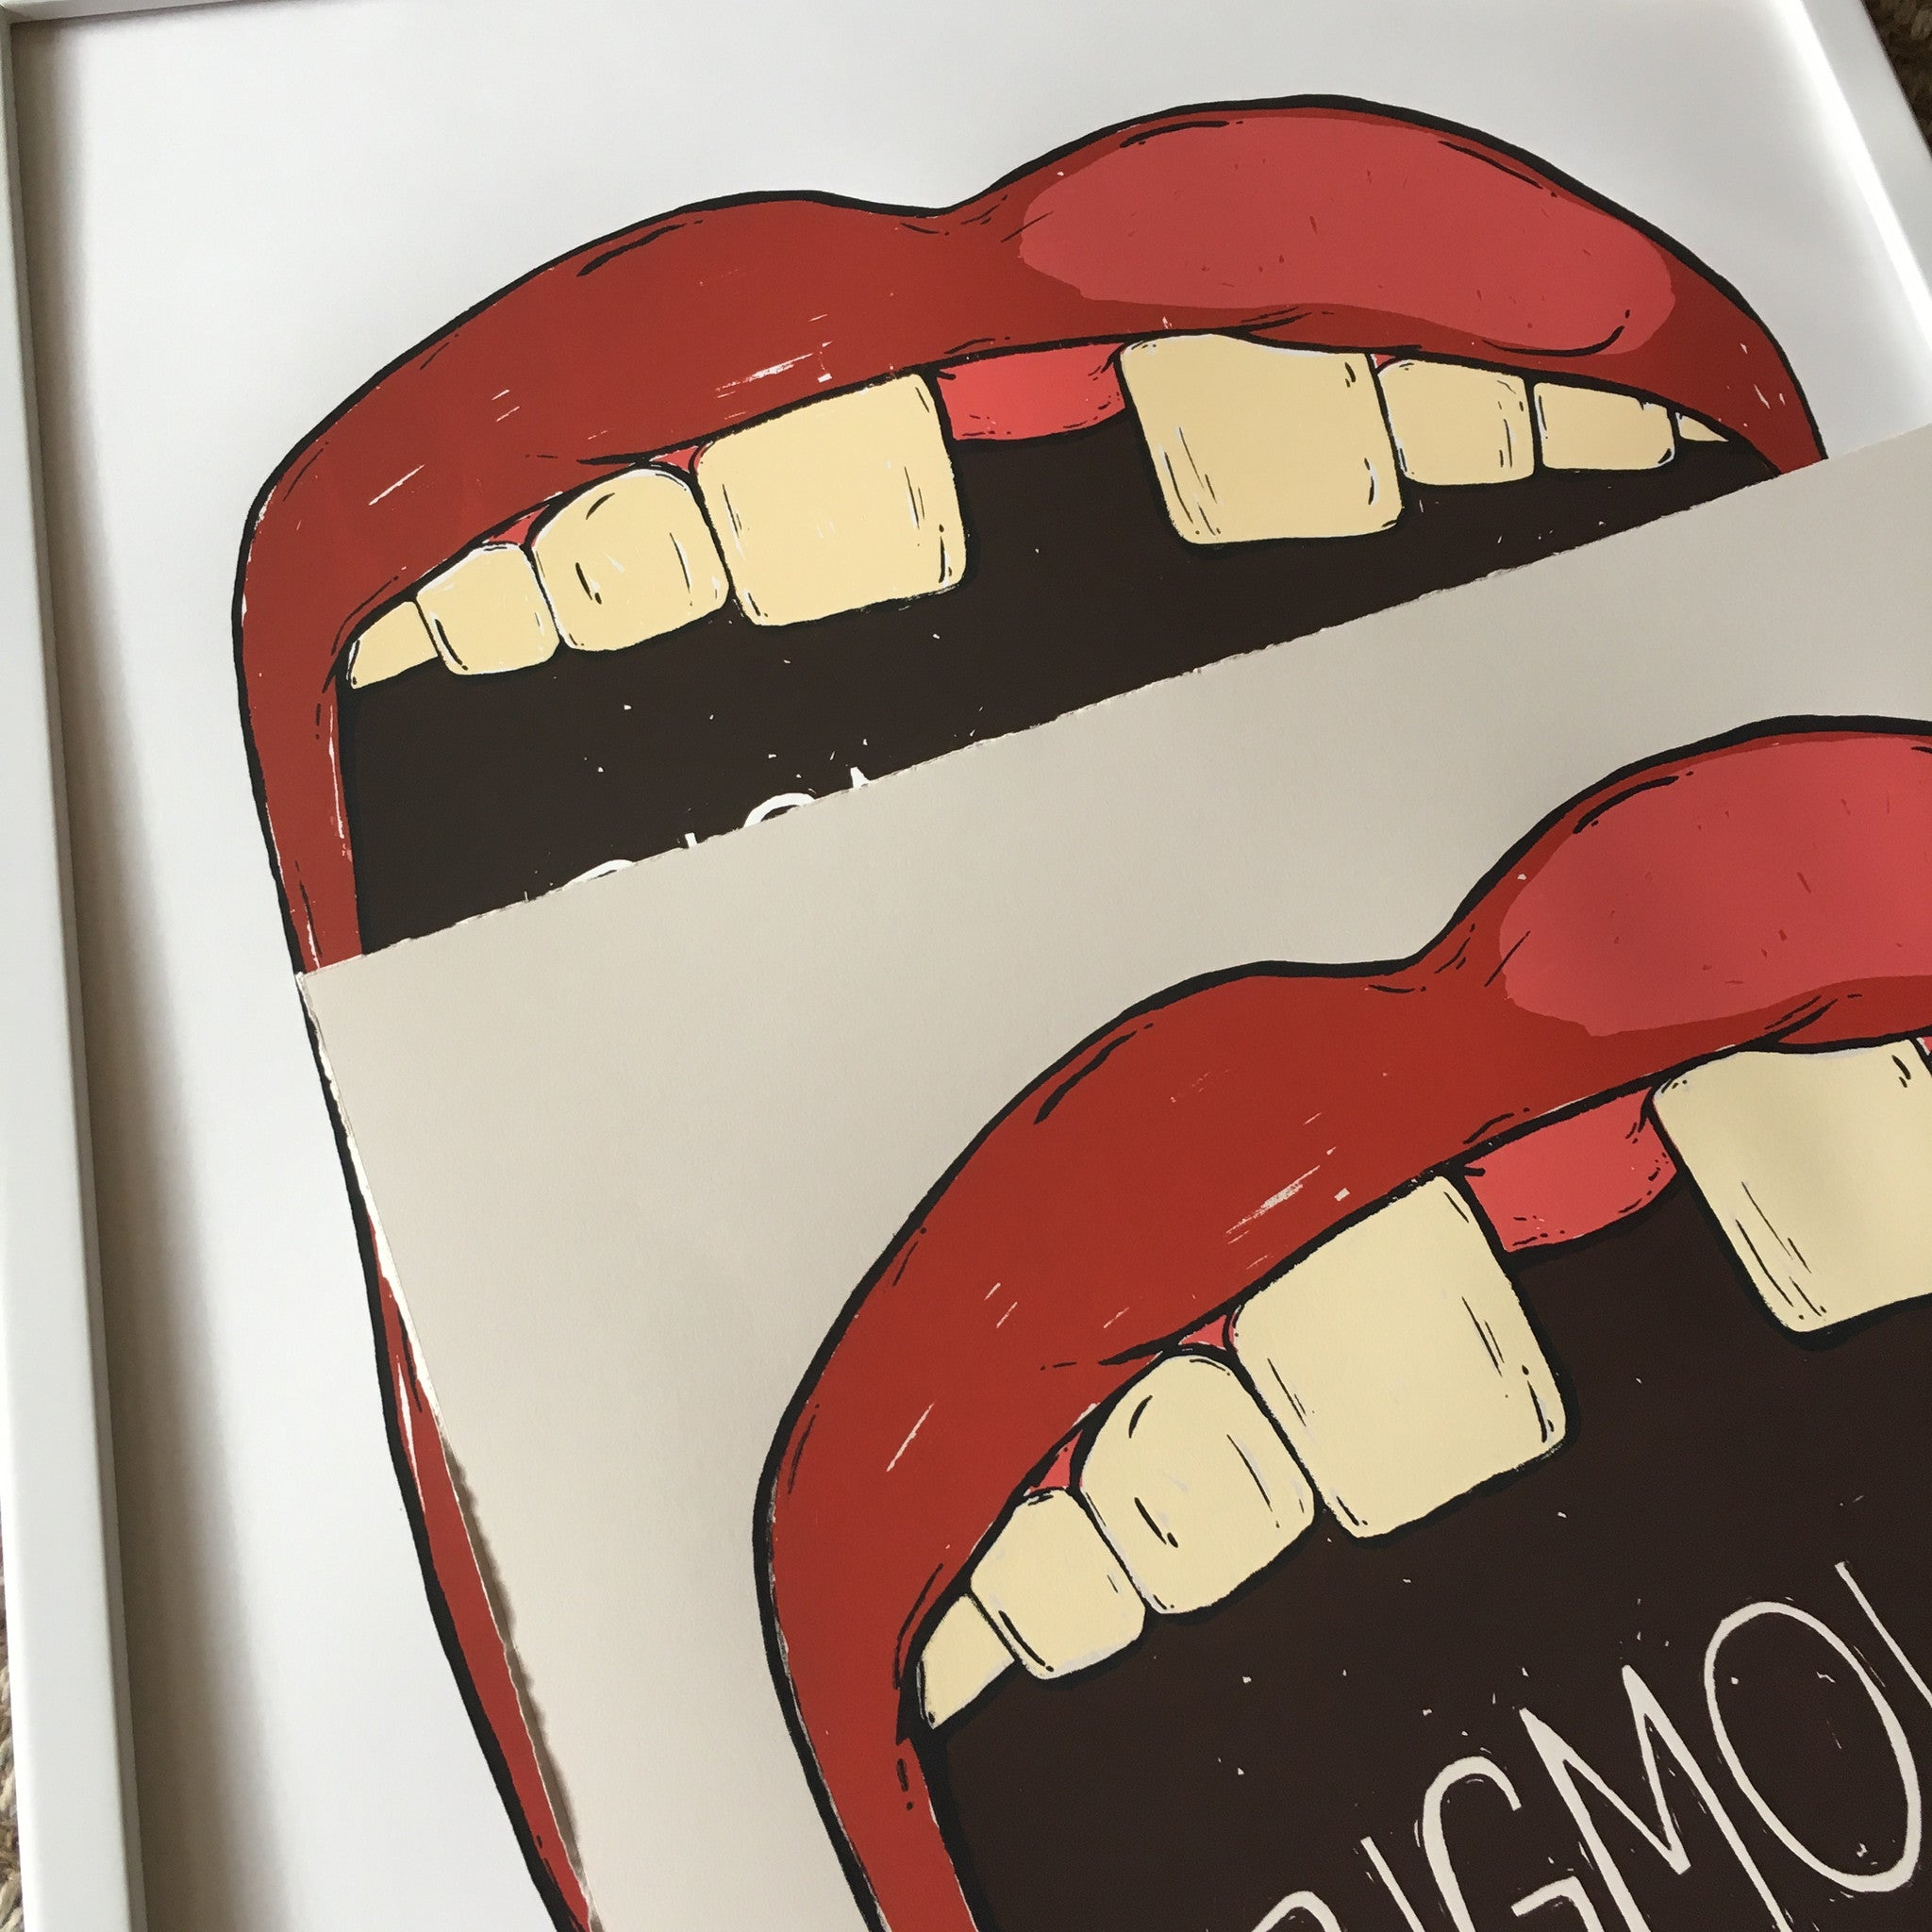 Big Mouth Strikes Again Hand Screened Poster Print - 18x24